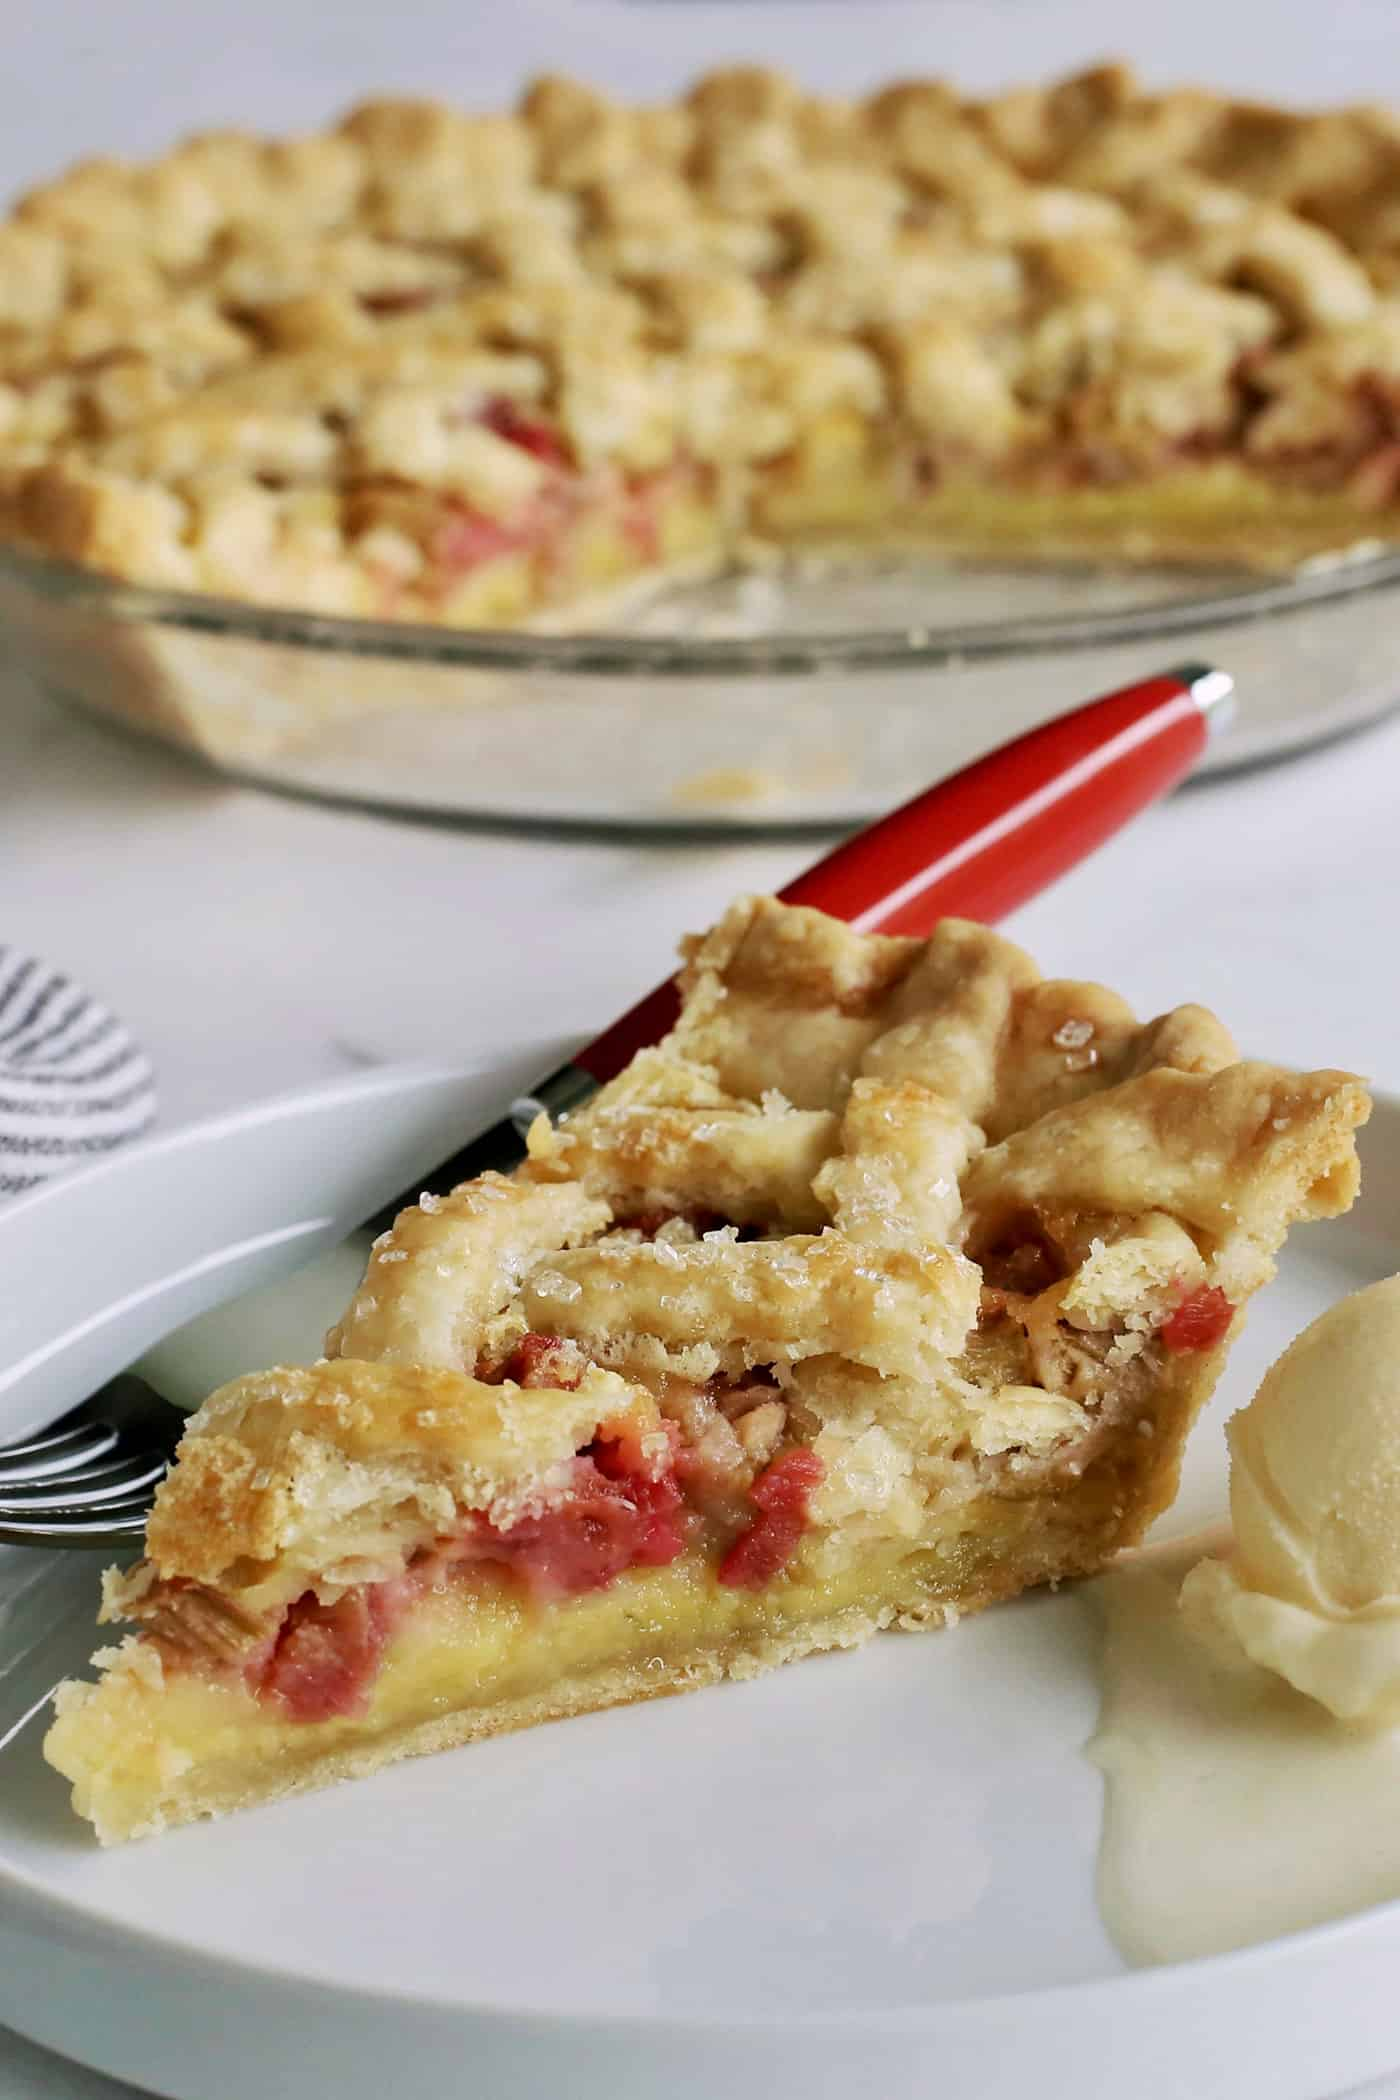 a slice of rhubarb custard pie on a white plate, with the pie plate in the background